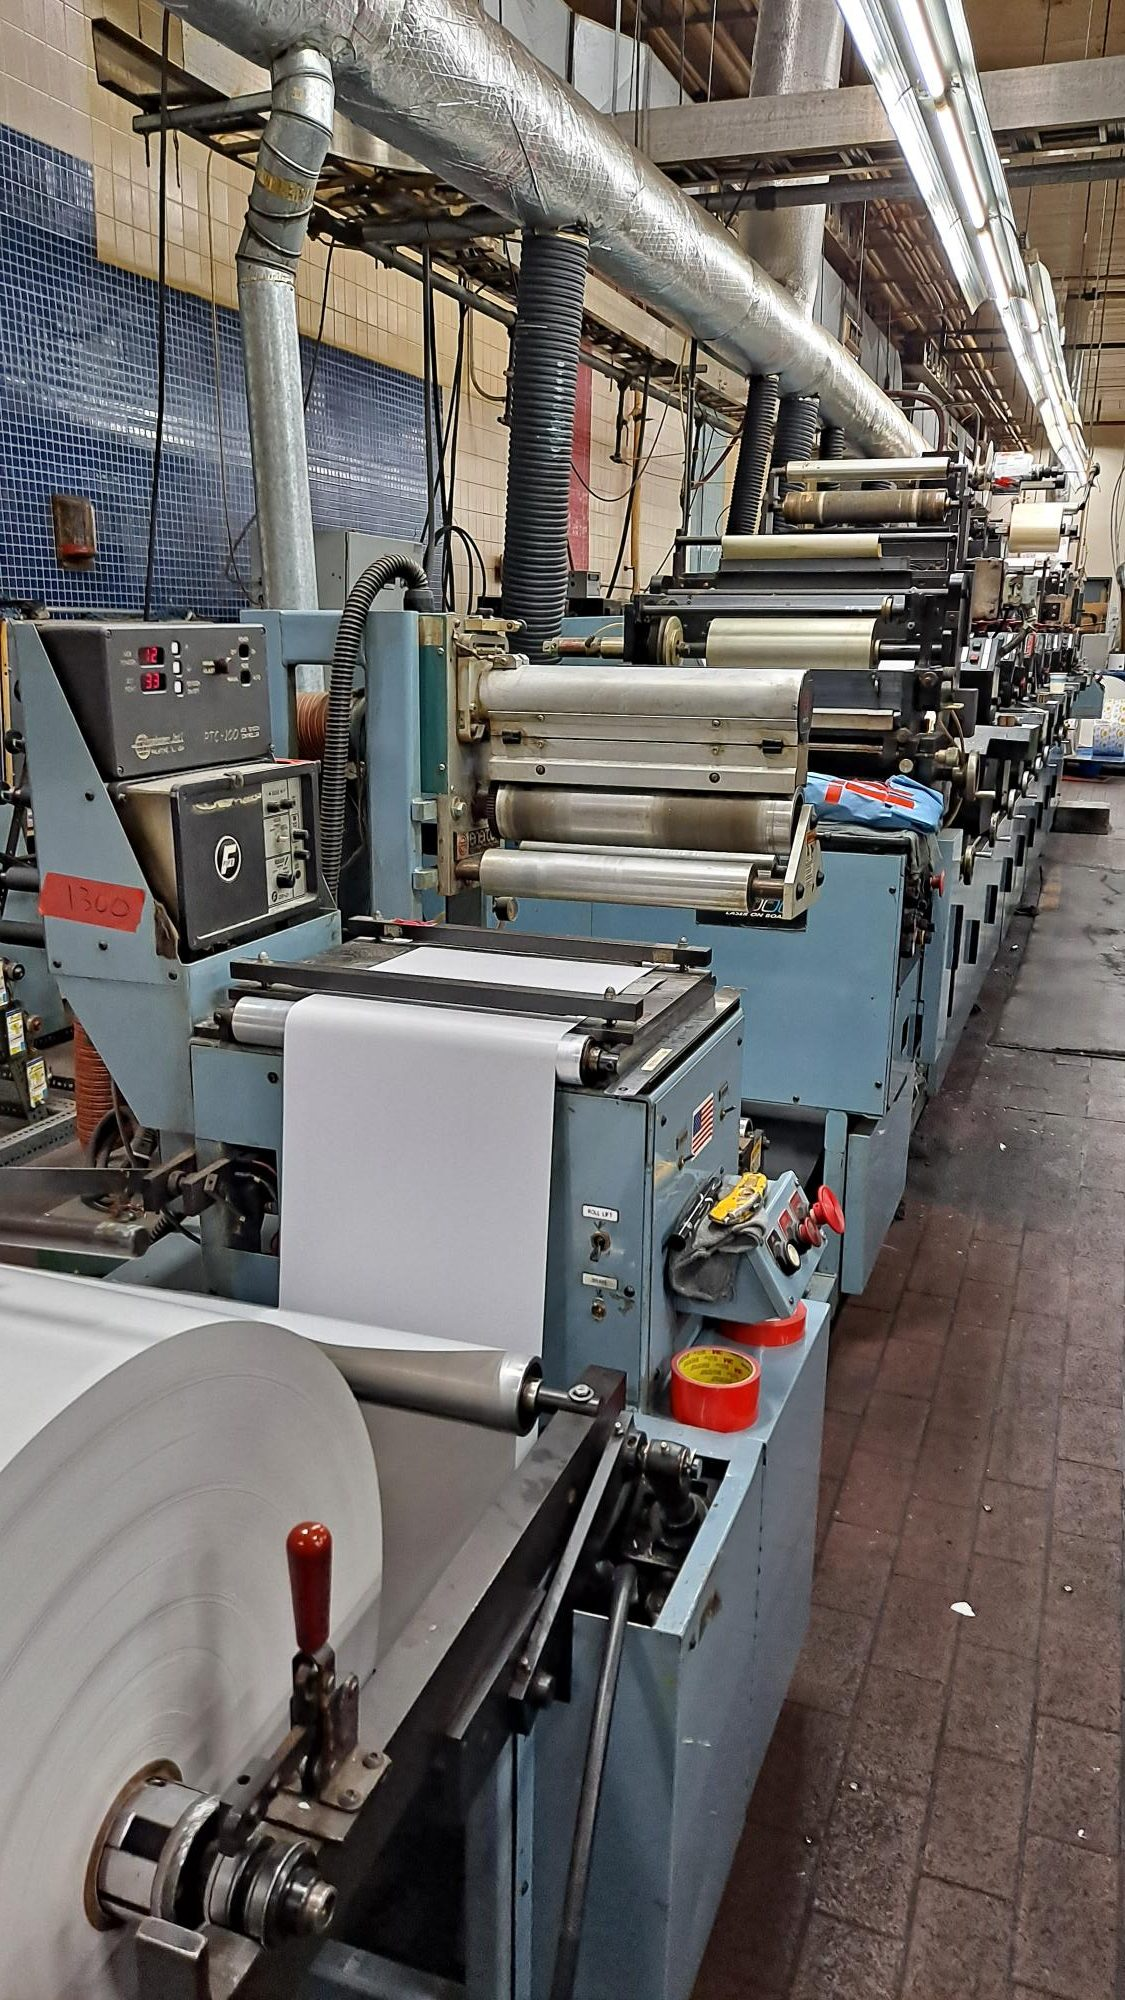 Propheteer 1300L - Used Flexo Printing Presses and Used Flexographic Equipment-4